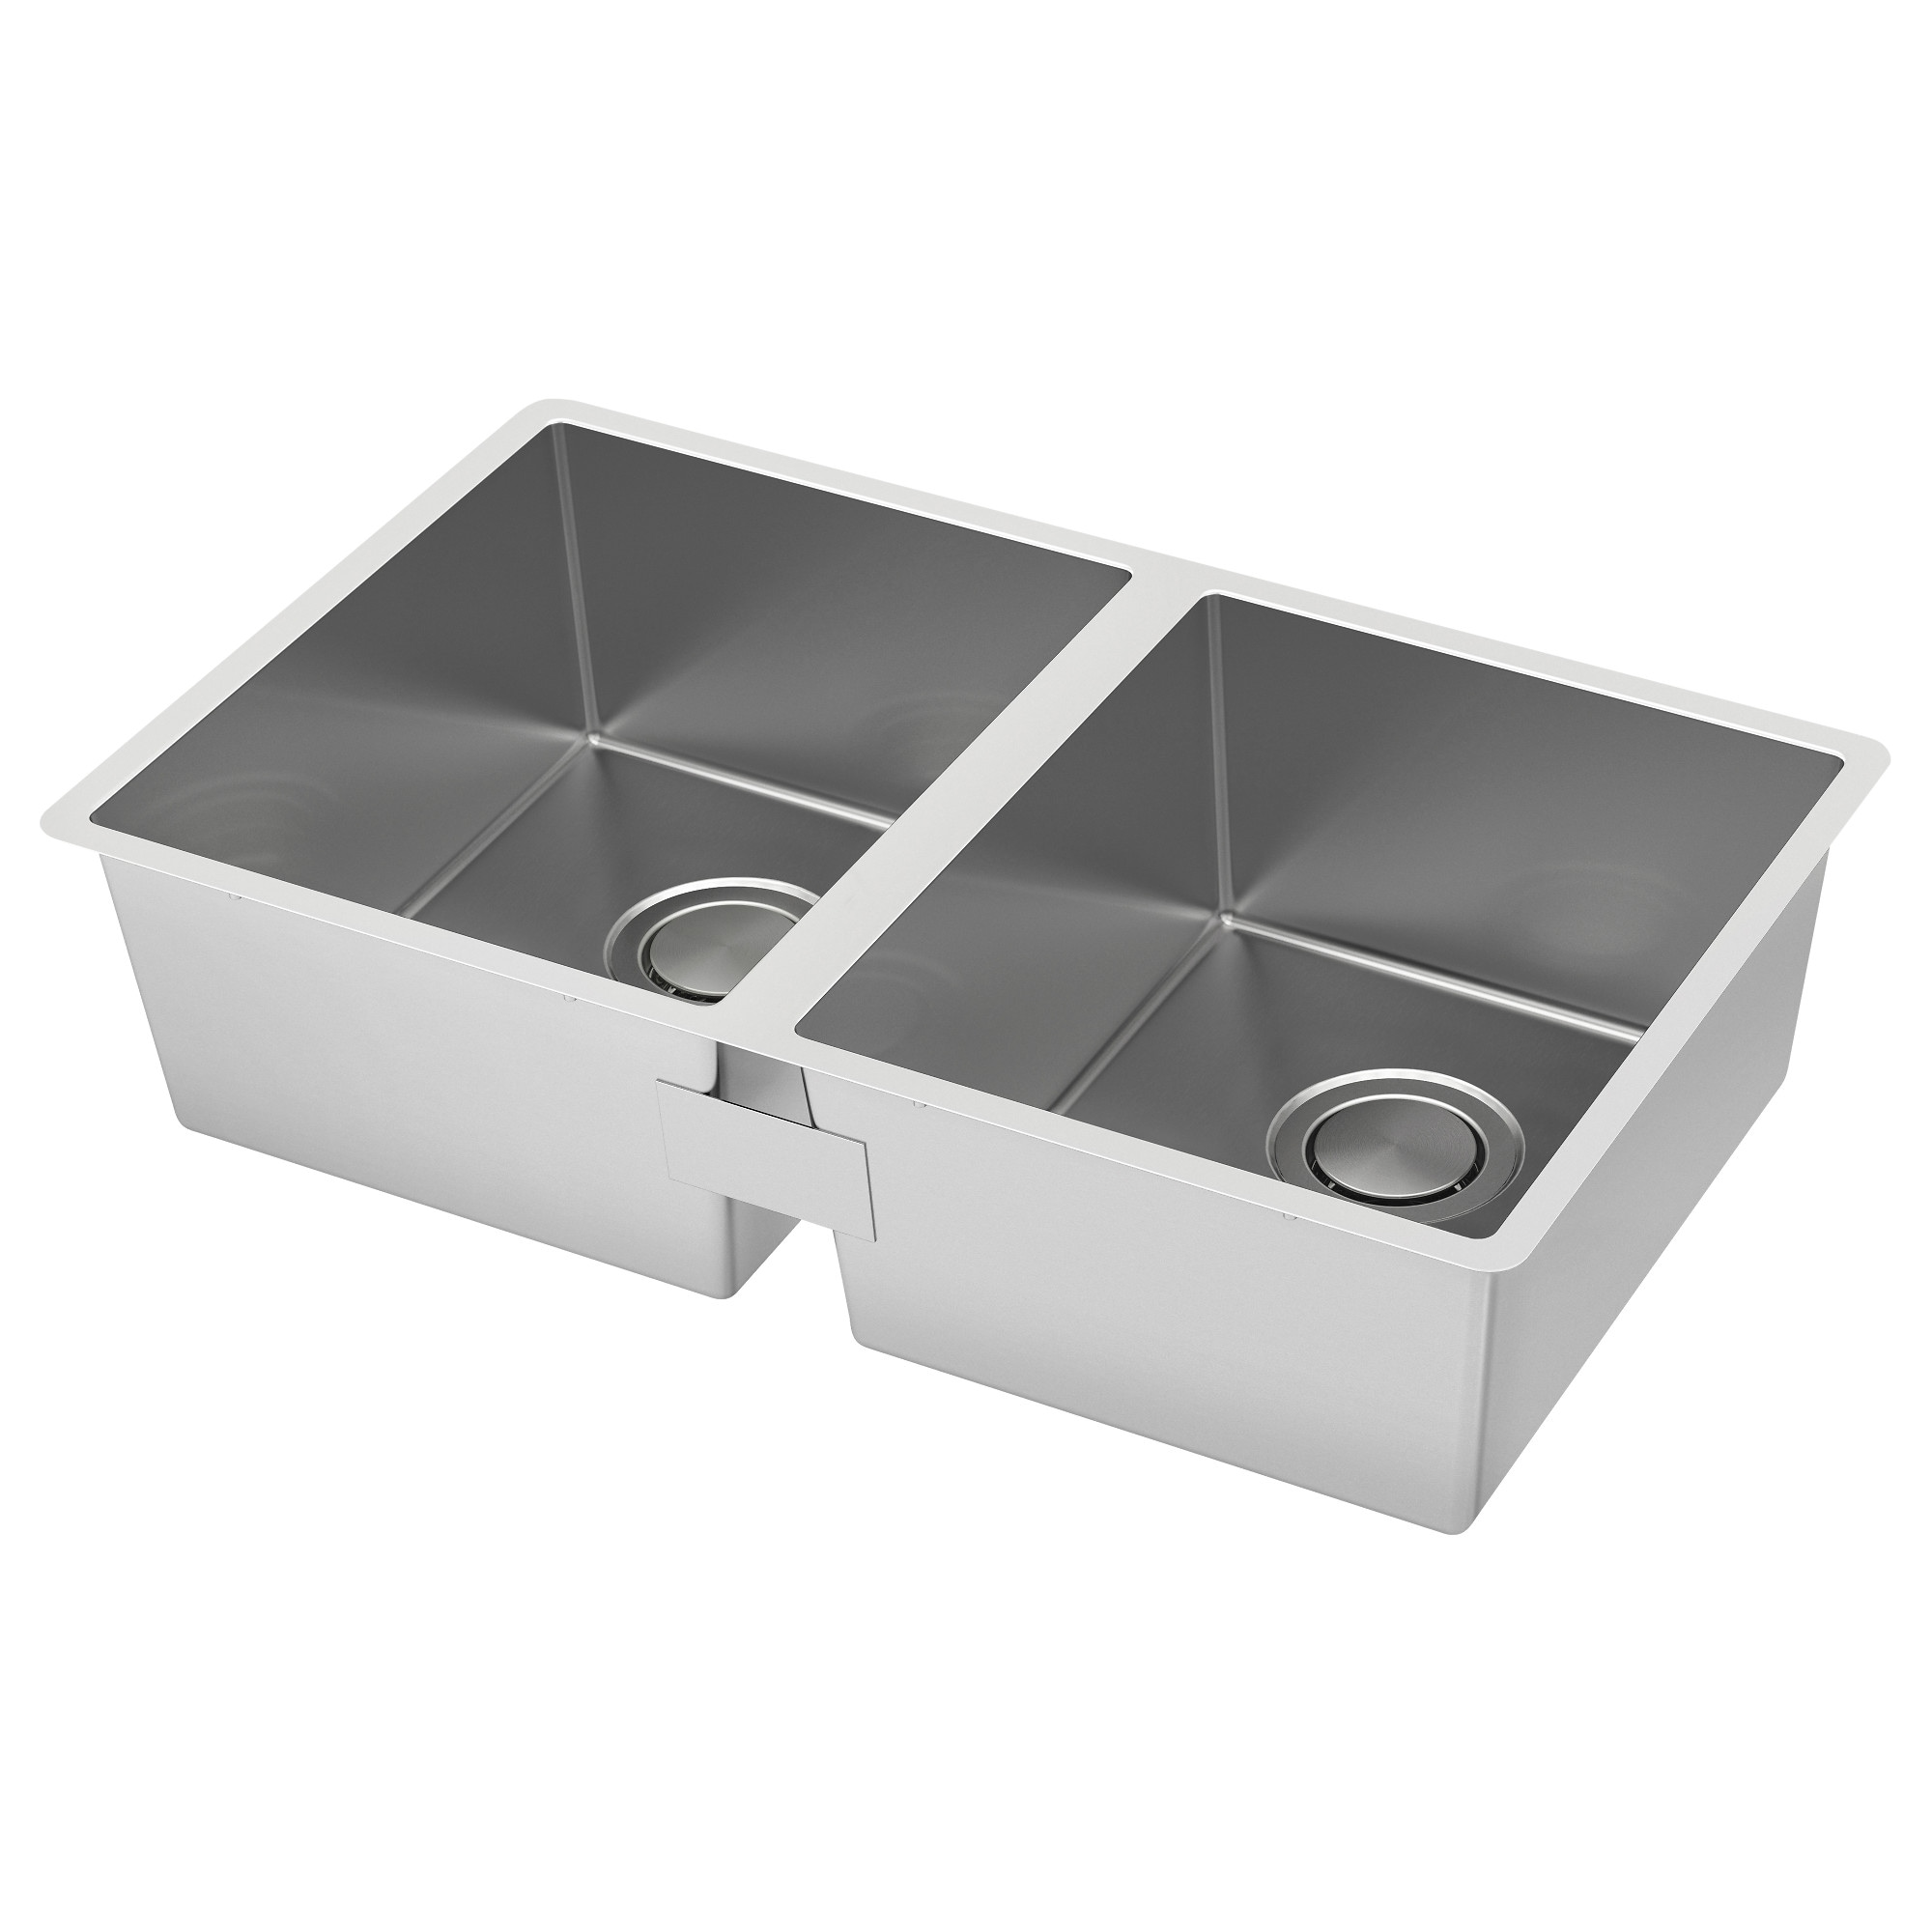 Norrsj N Double Bowl Top Mount Sink Stainless Steel Length 28 3 4